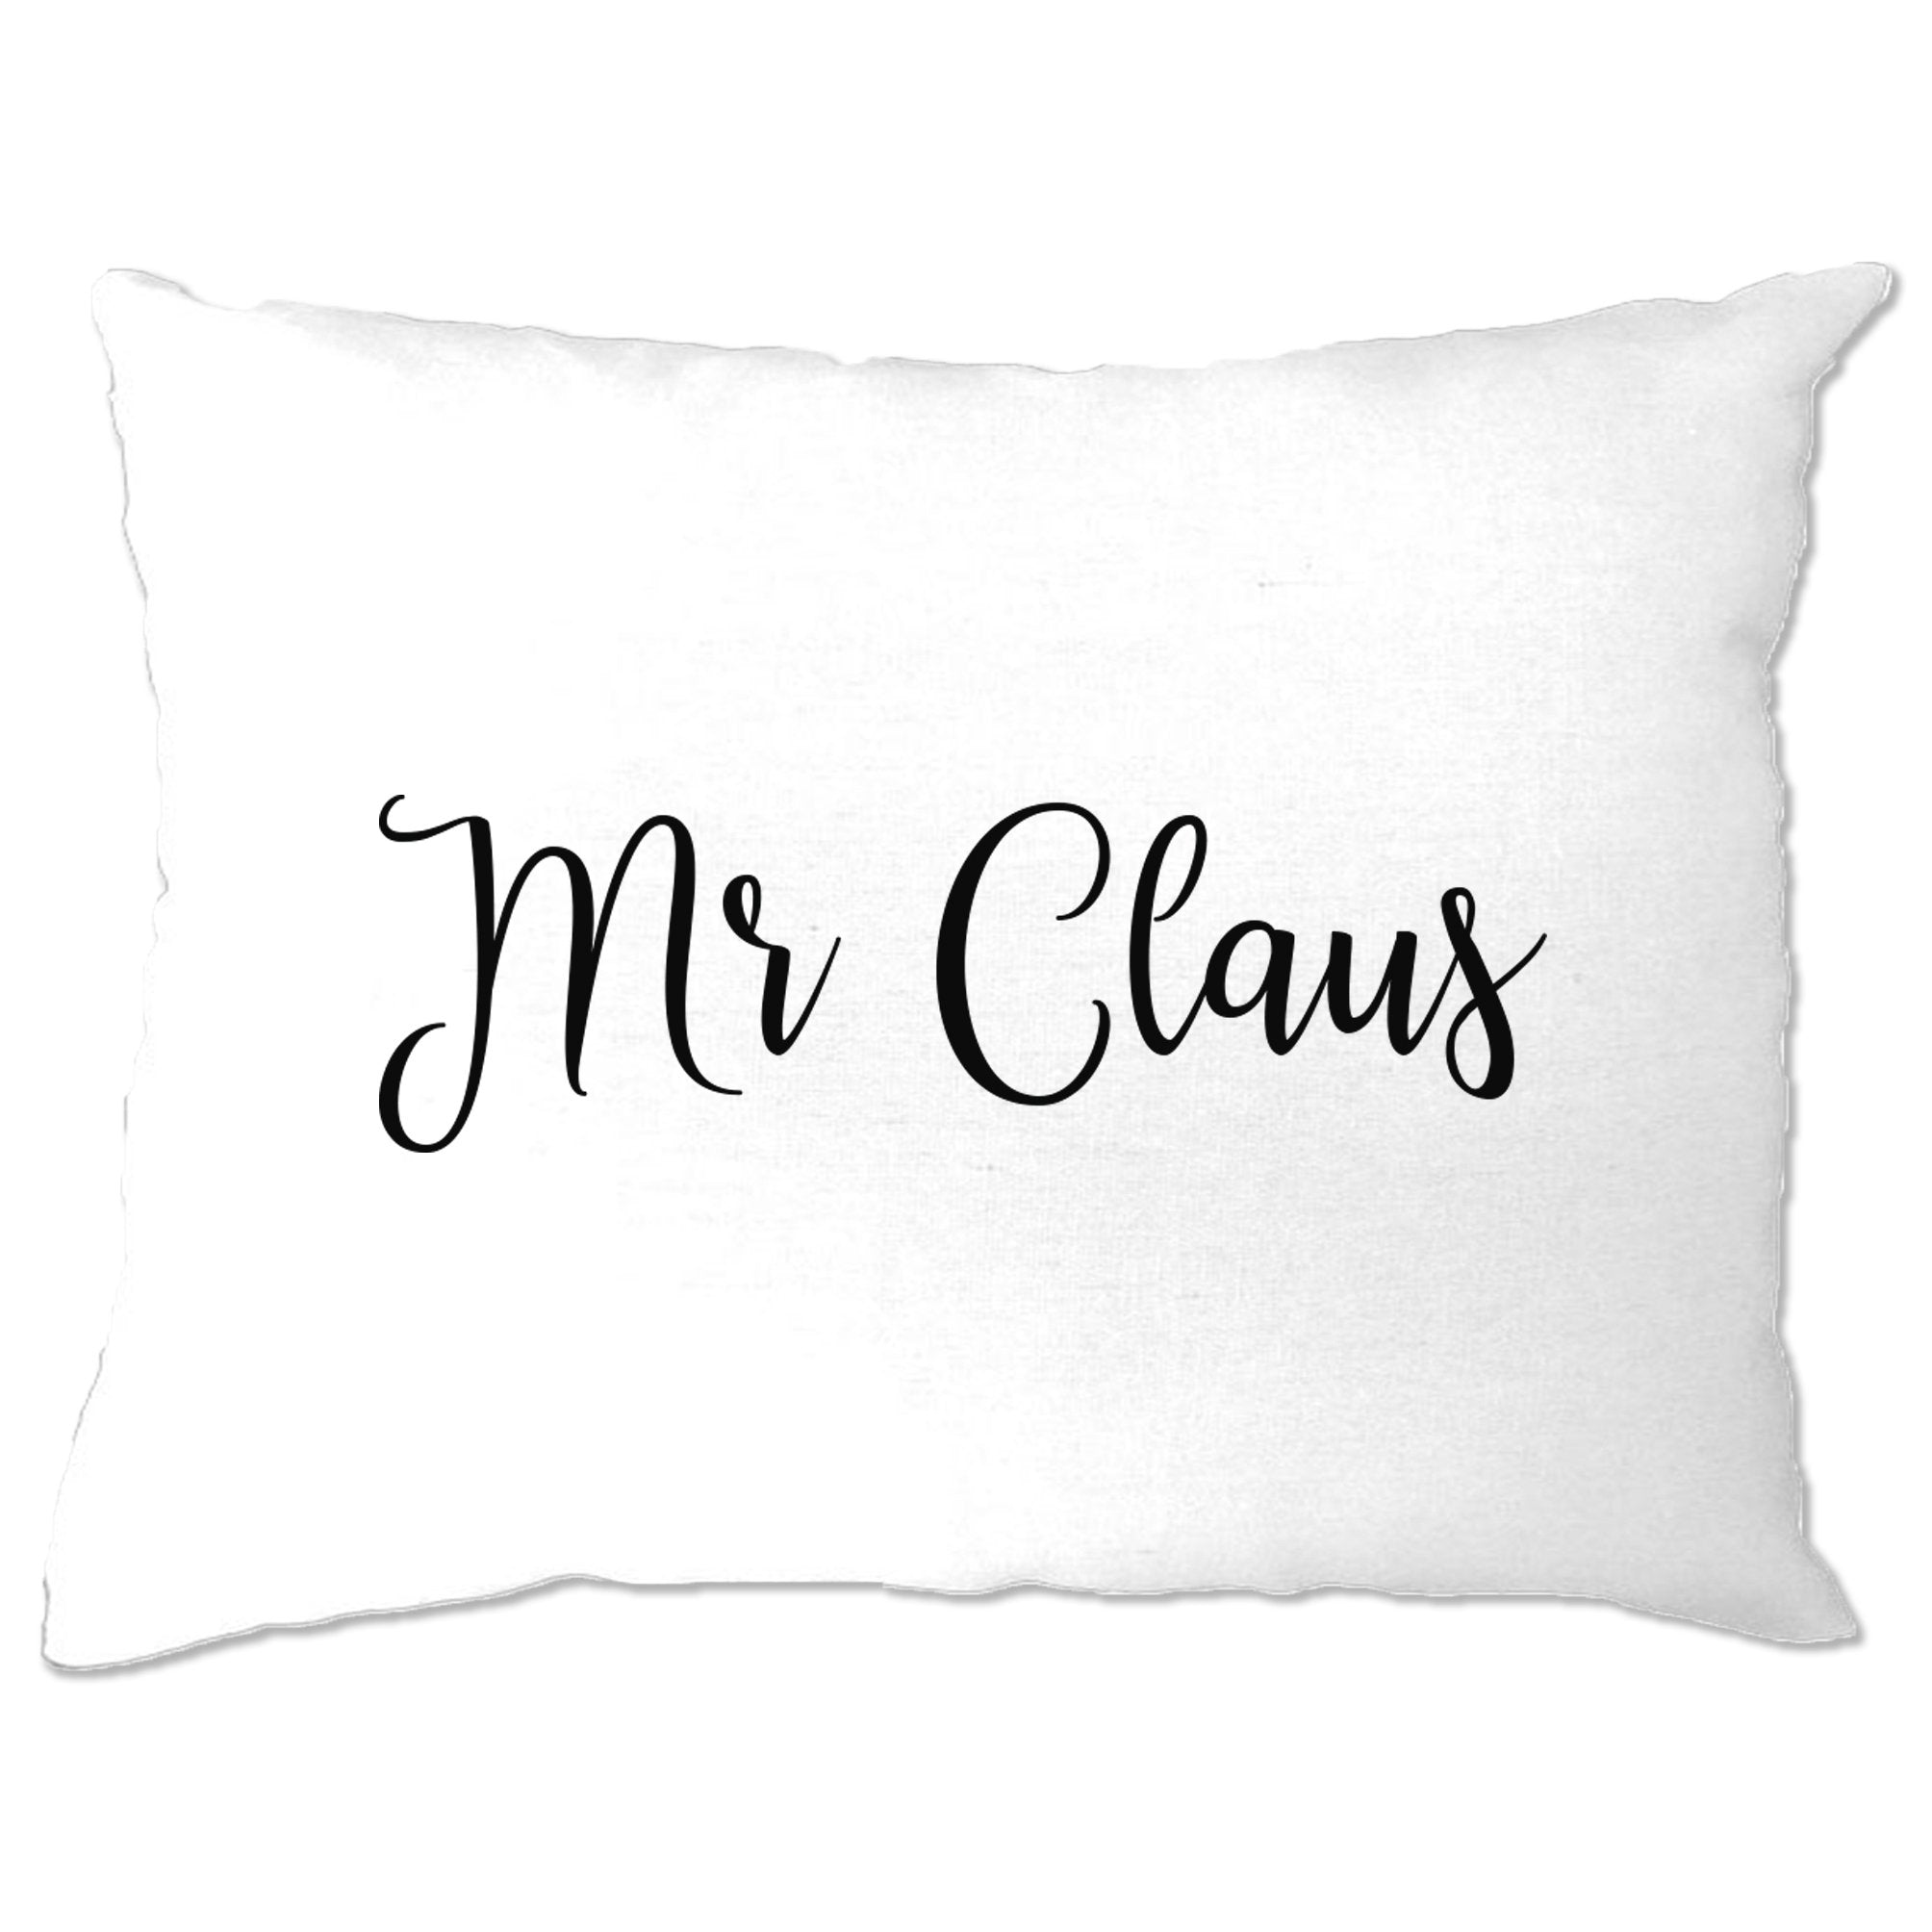 Novelty Christmas Pillow Case Mr Claus Slogan